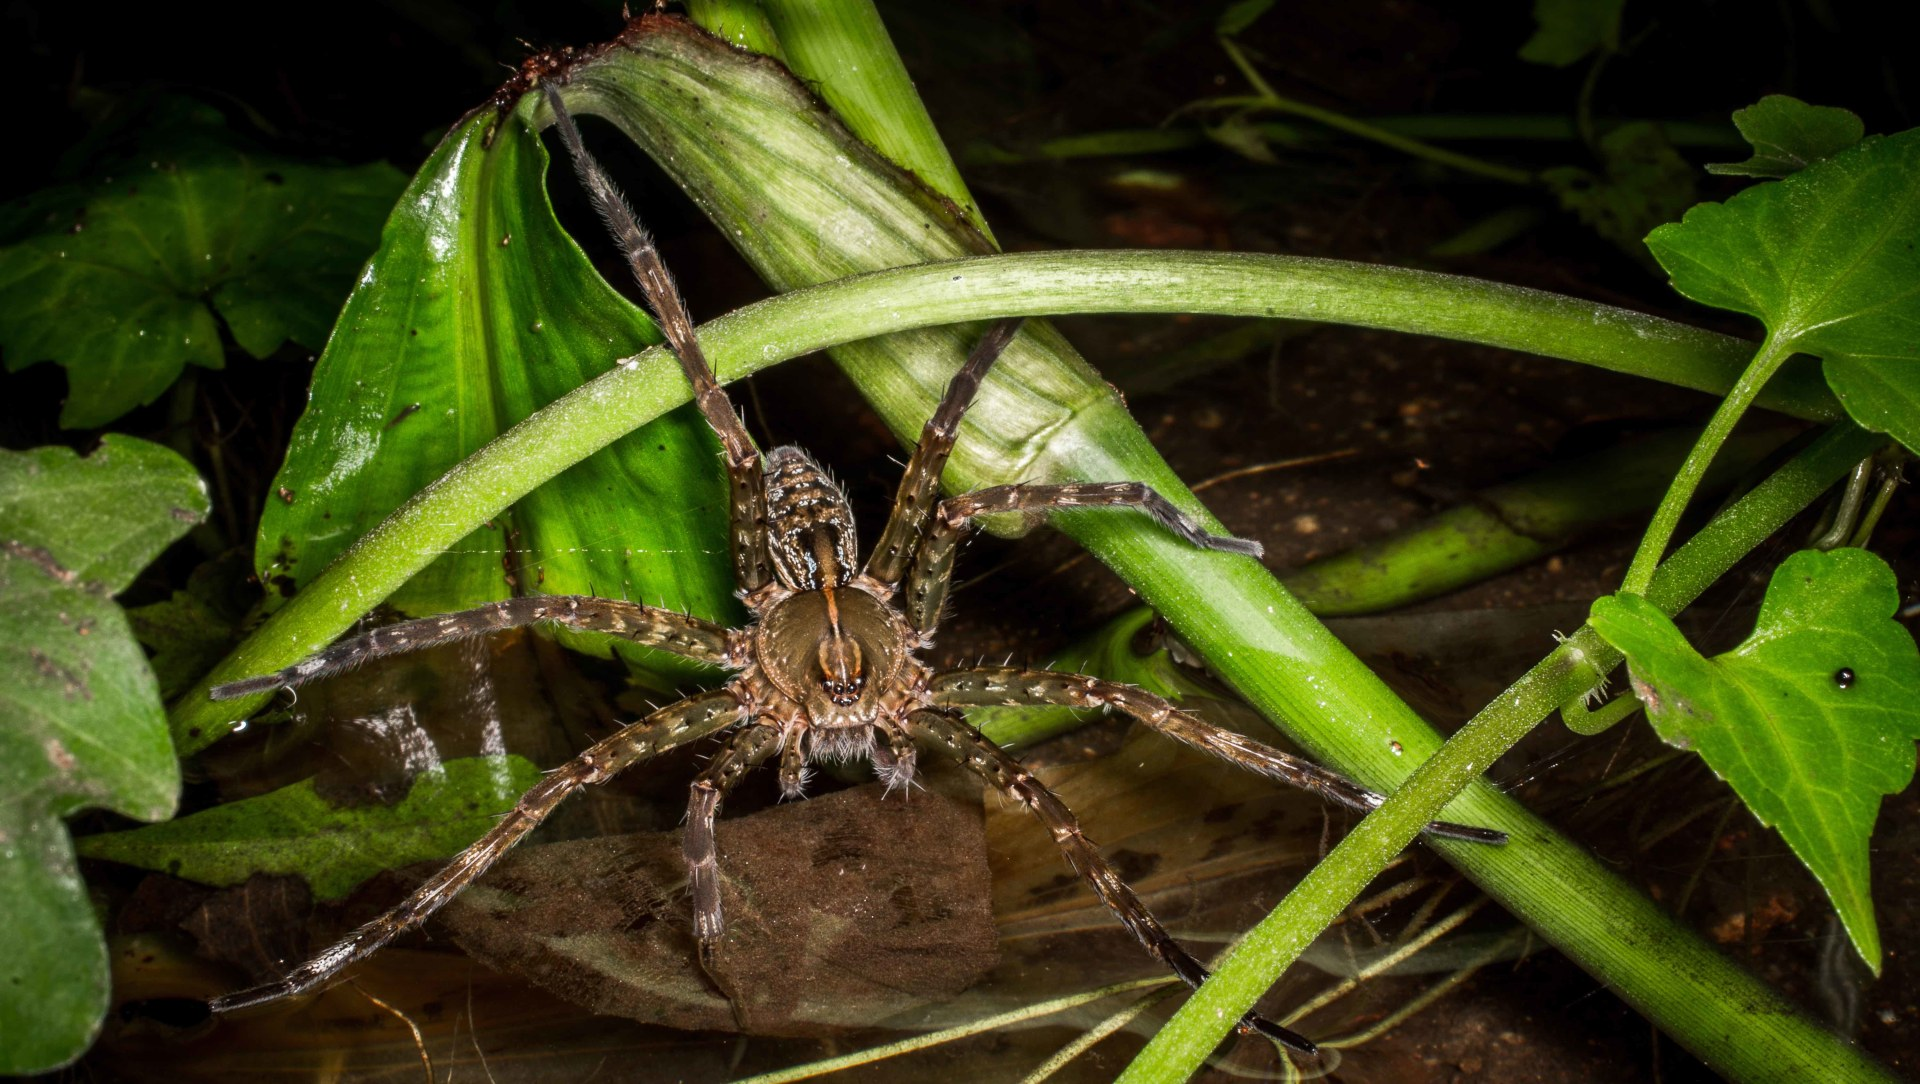 The Spider's Wharf: Tales of a Freshwater Fishing Enthusiast